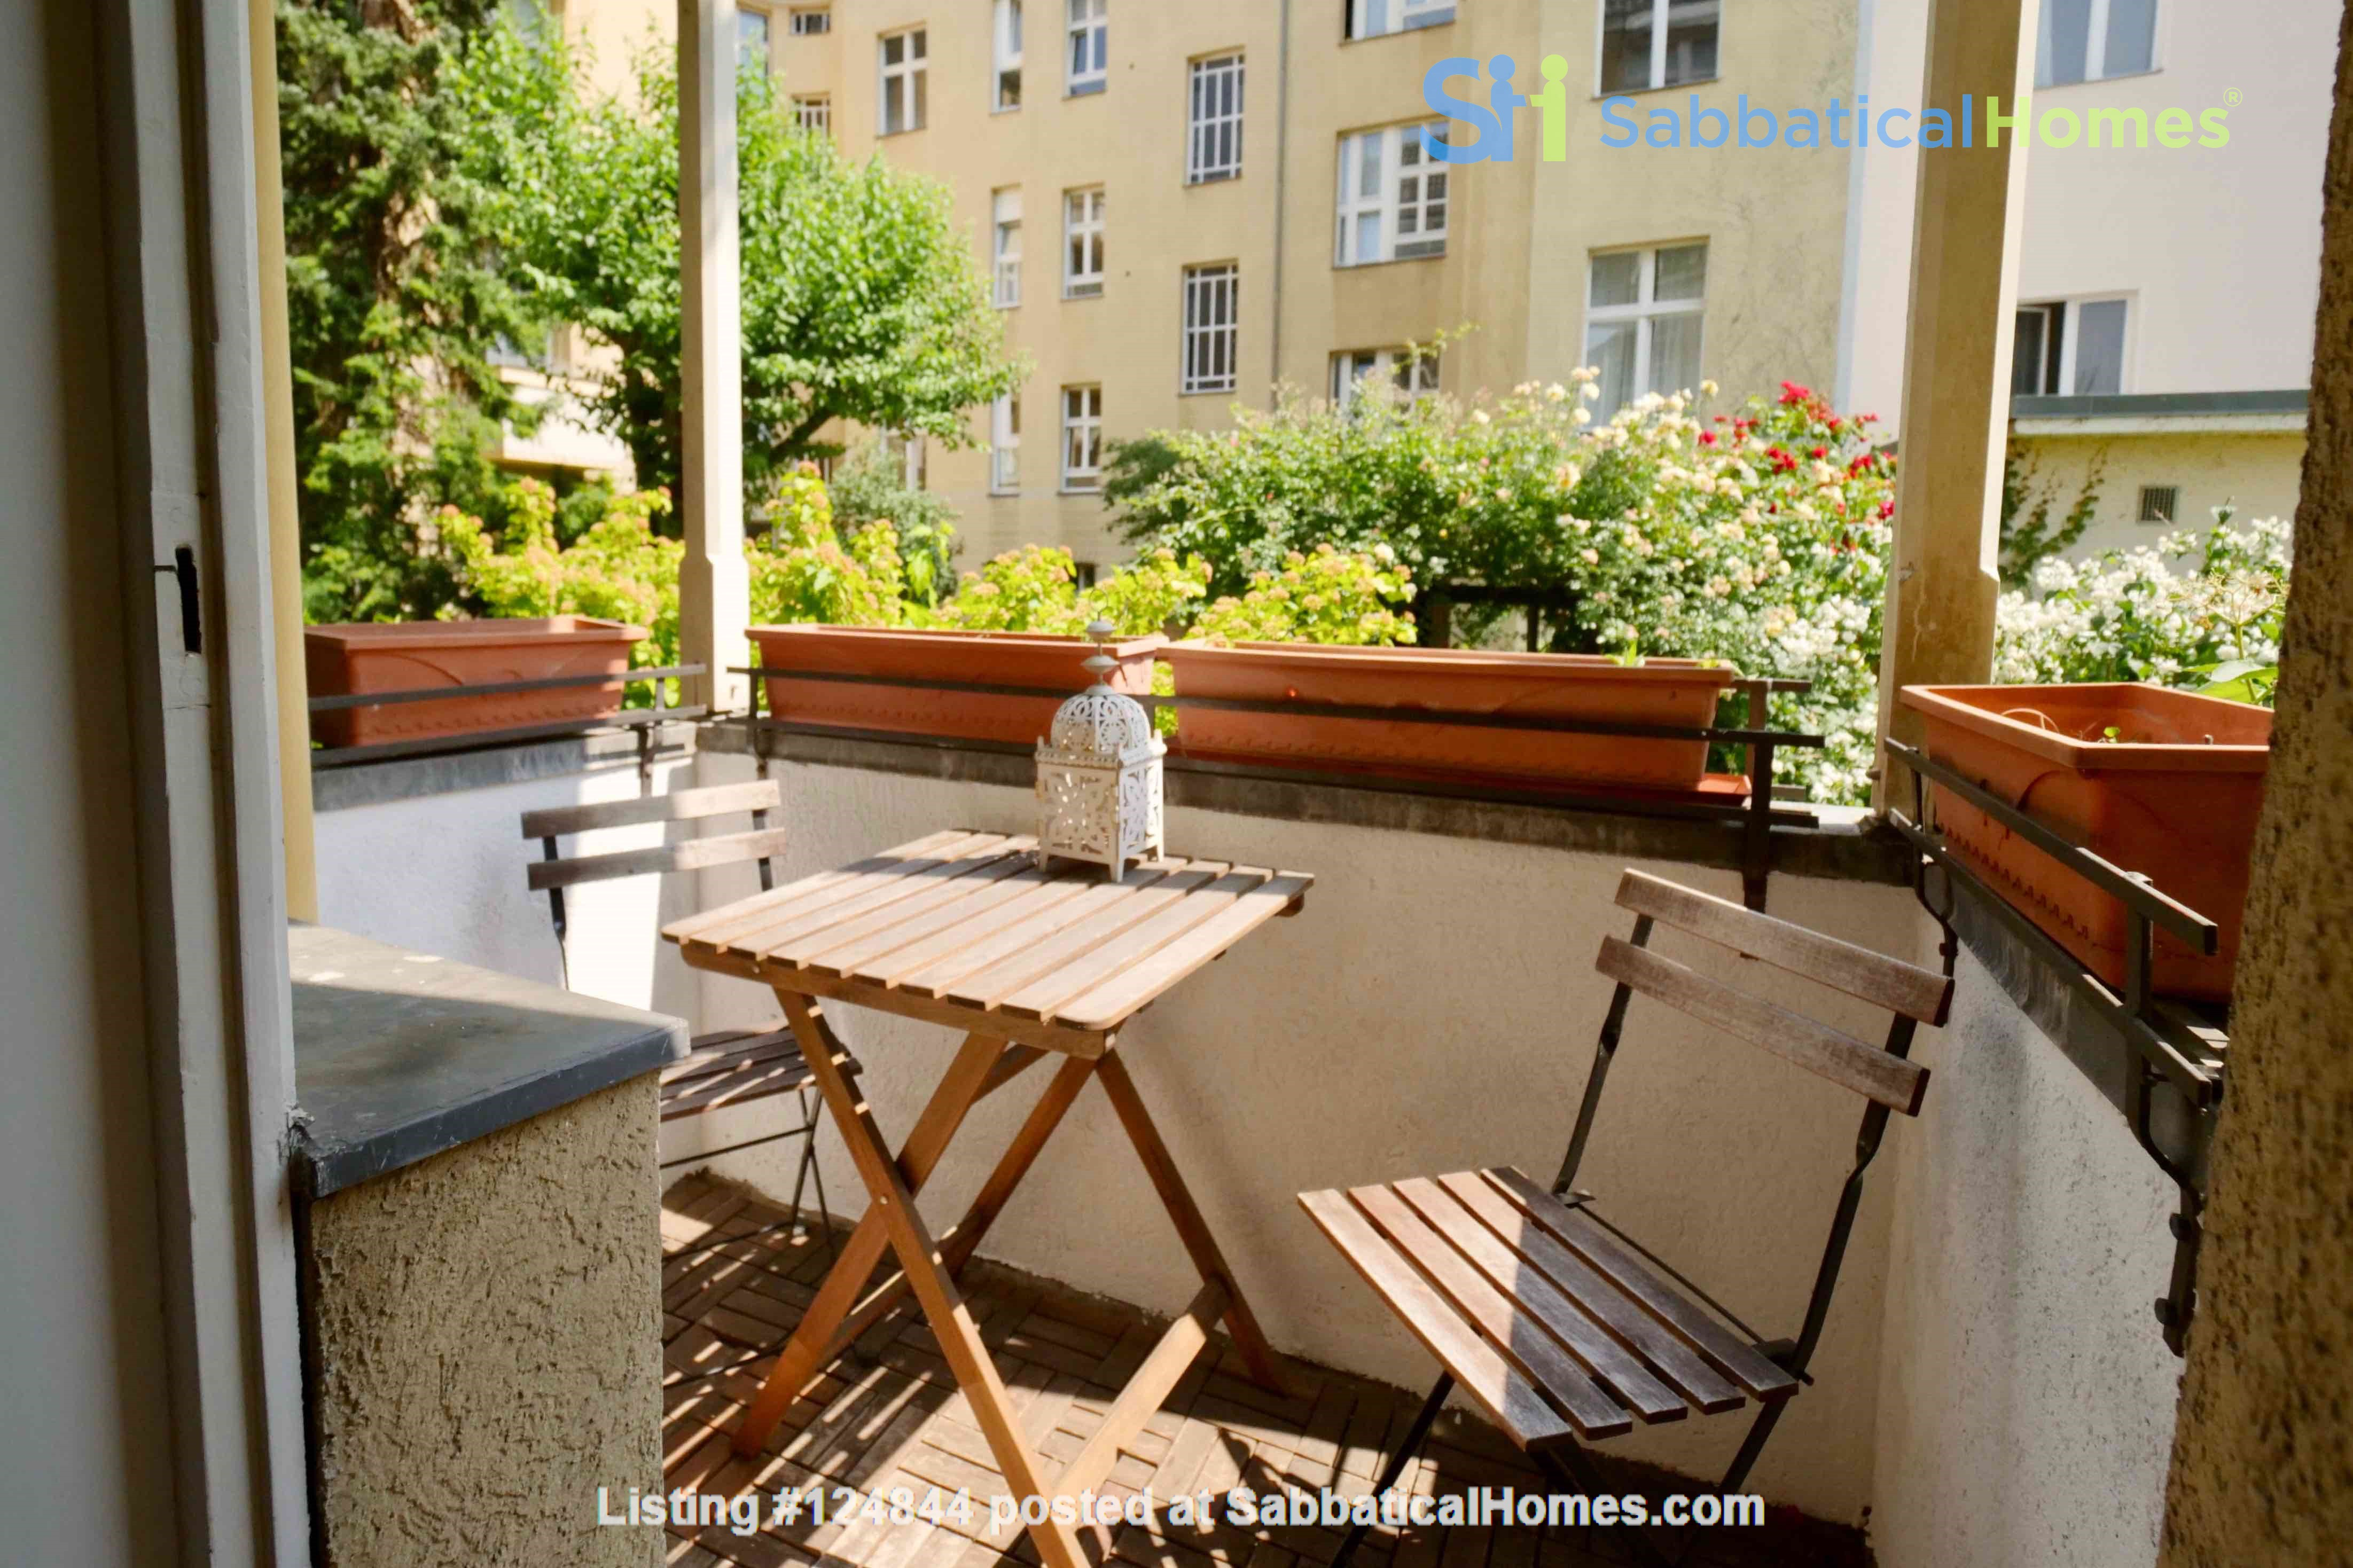 Charming 2-room apartment with balcony and fireplace Home Rental in Berlin, Berlin, Germany 2